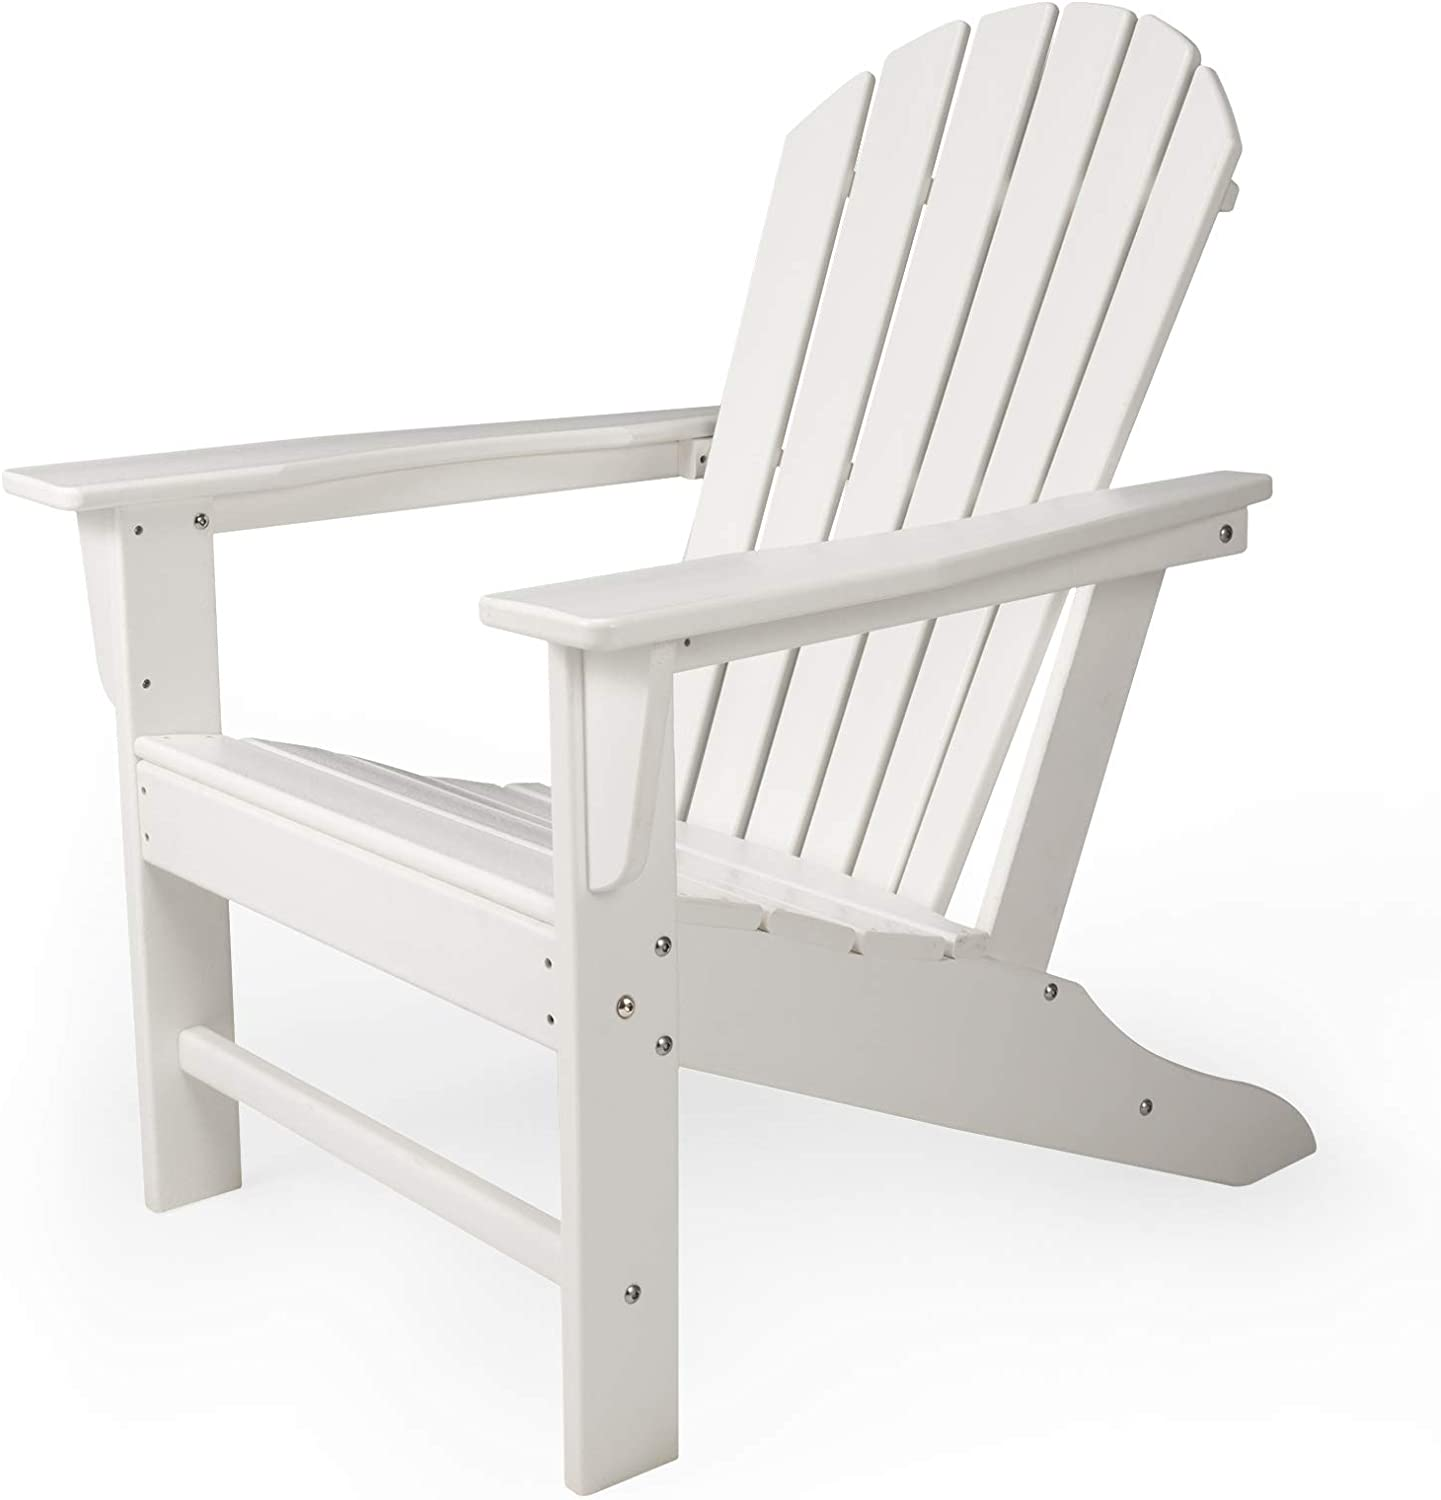 DAILYLIFE HDPE Adirondack Chair, Patio Outdoor Chairs, Plastic Resin Deck Chair, Painted Weather Resistant, for Deck, Garden, Backyard & Lawn Furniture, Fire Pit, Porch Seating (White)